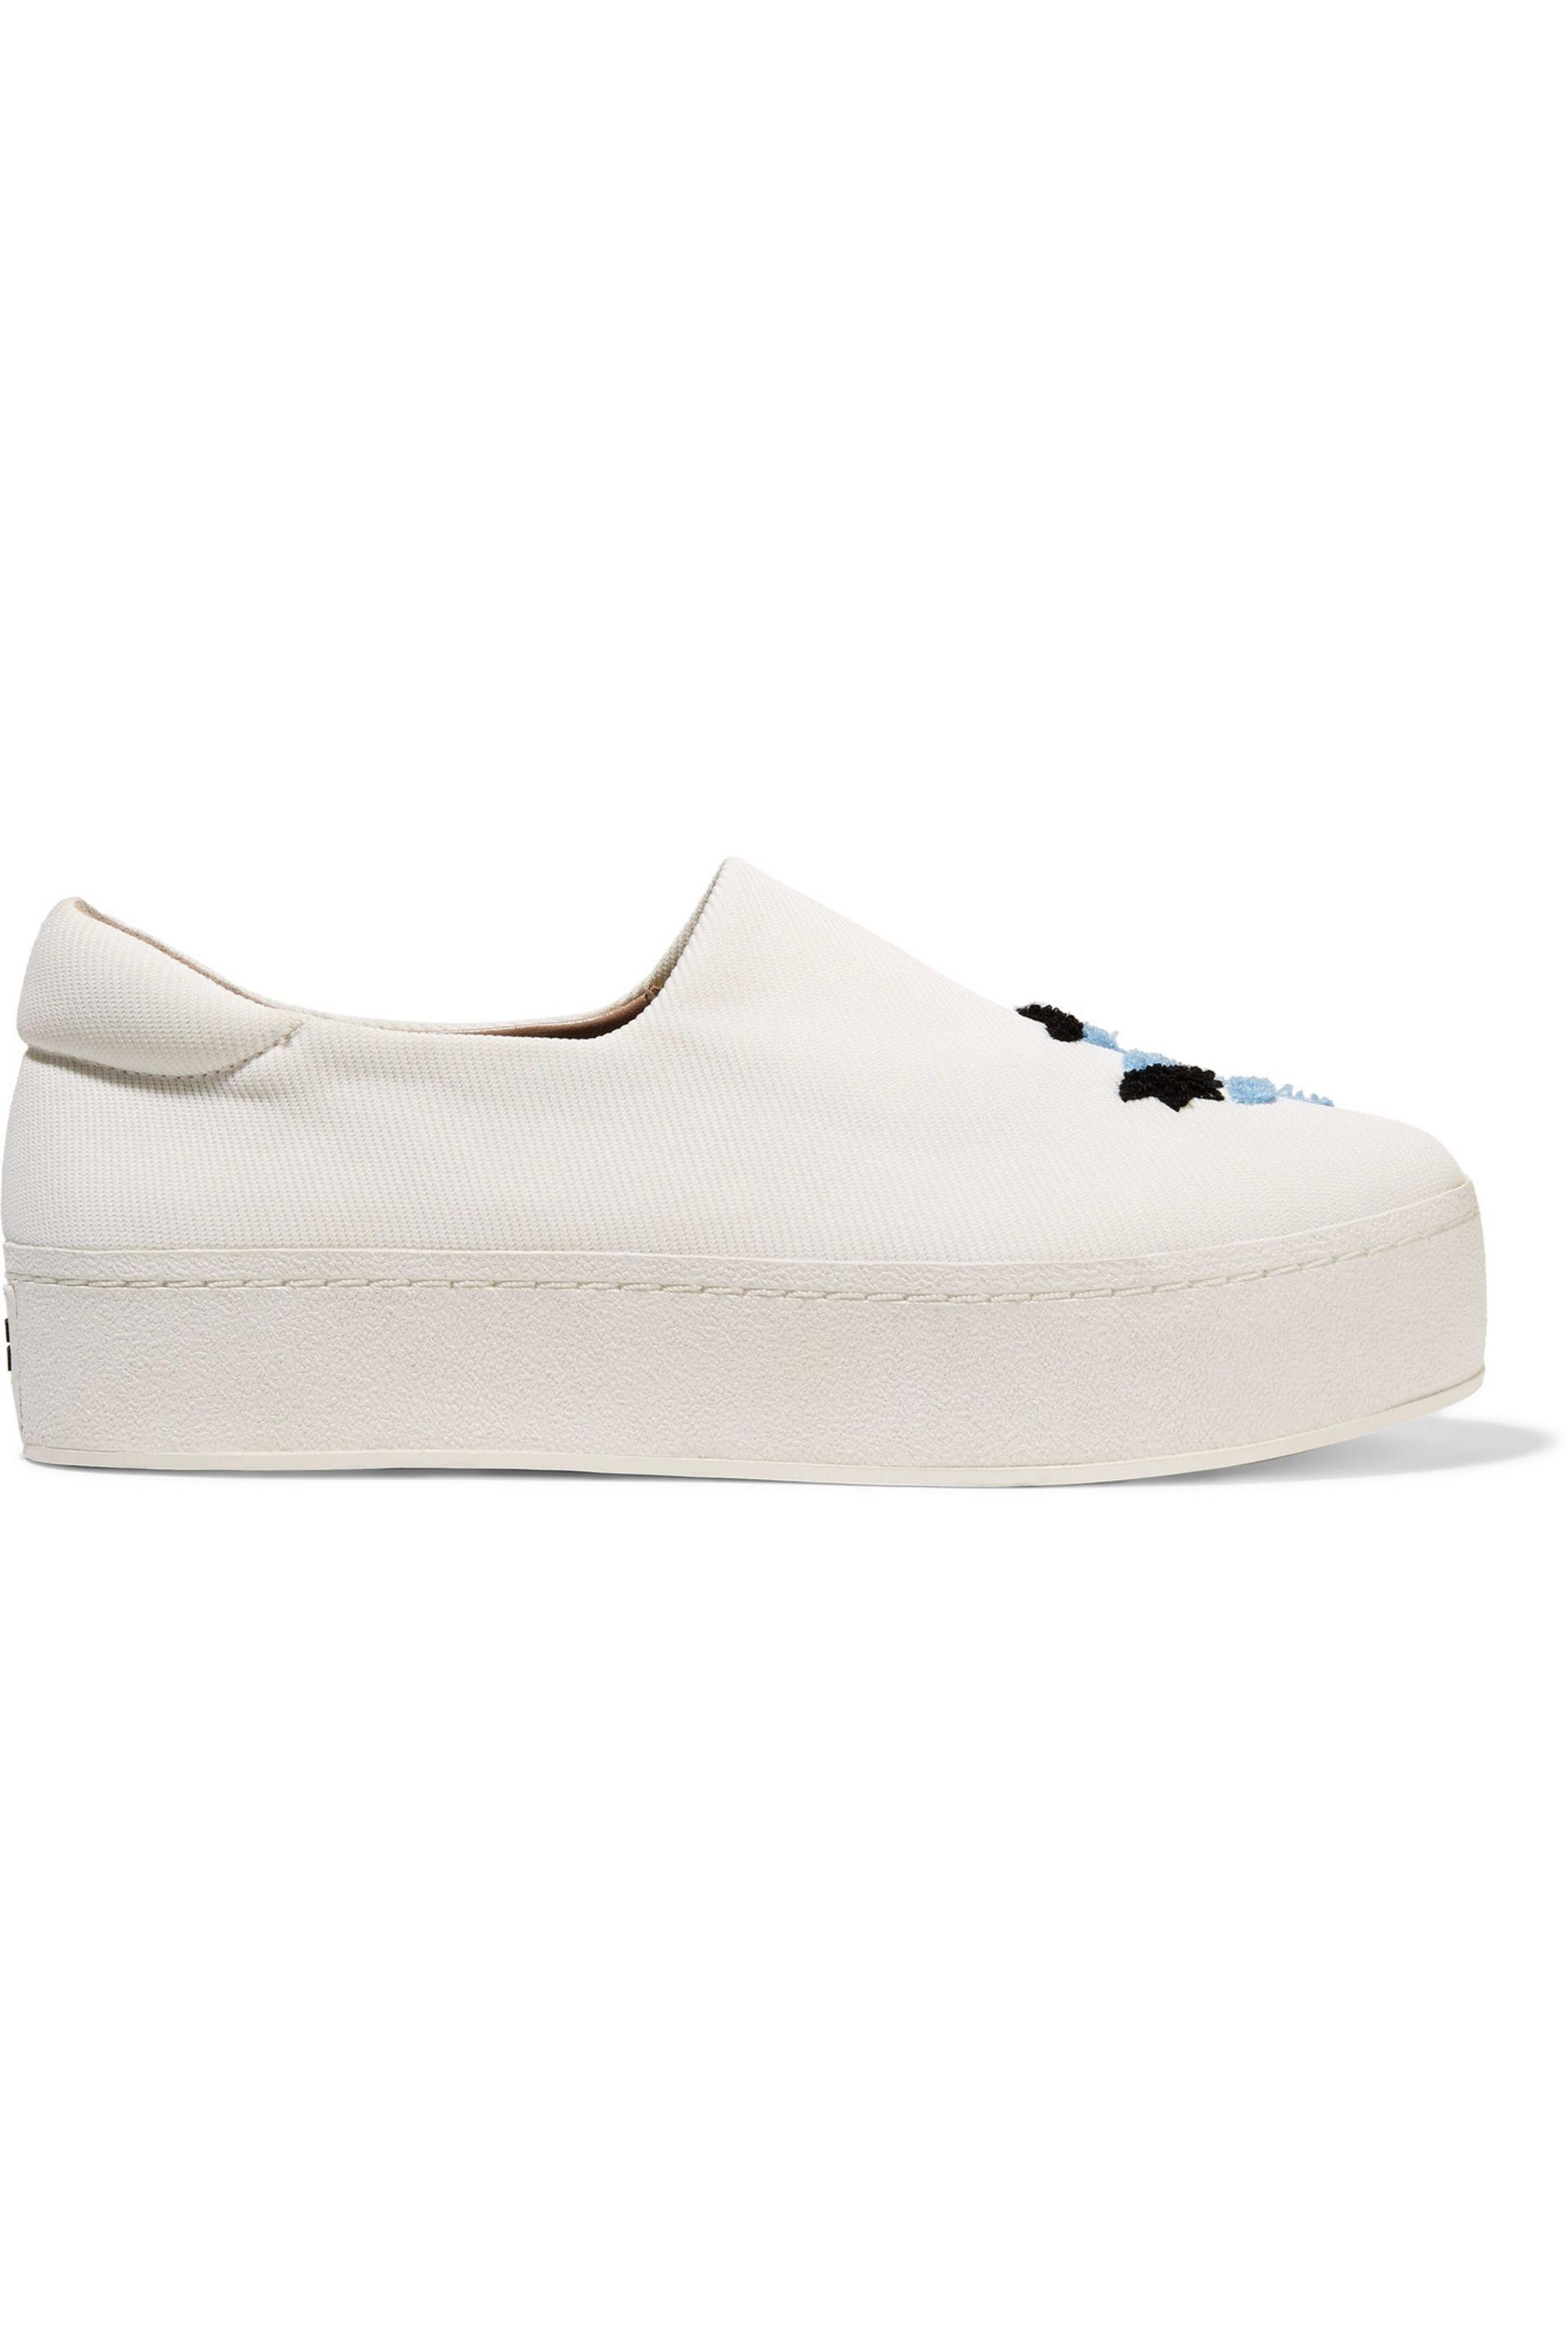 Embroidered slip-on shoes Opening Ceremony hT1c7